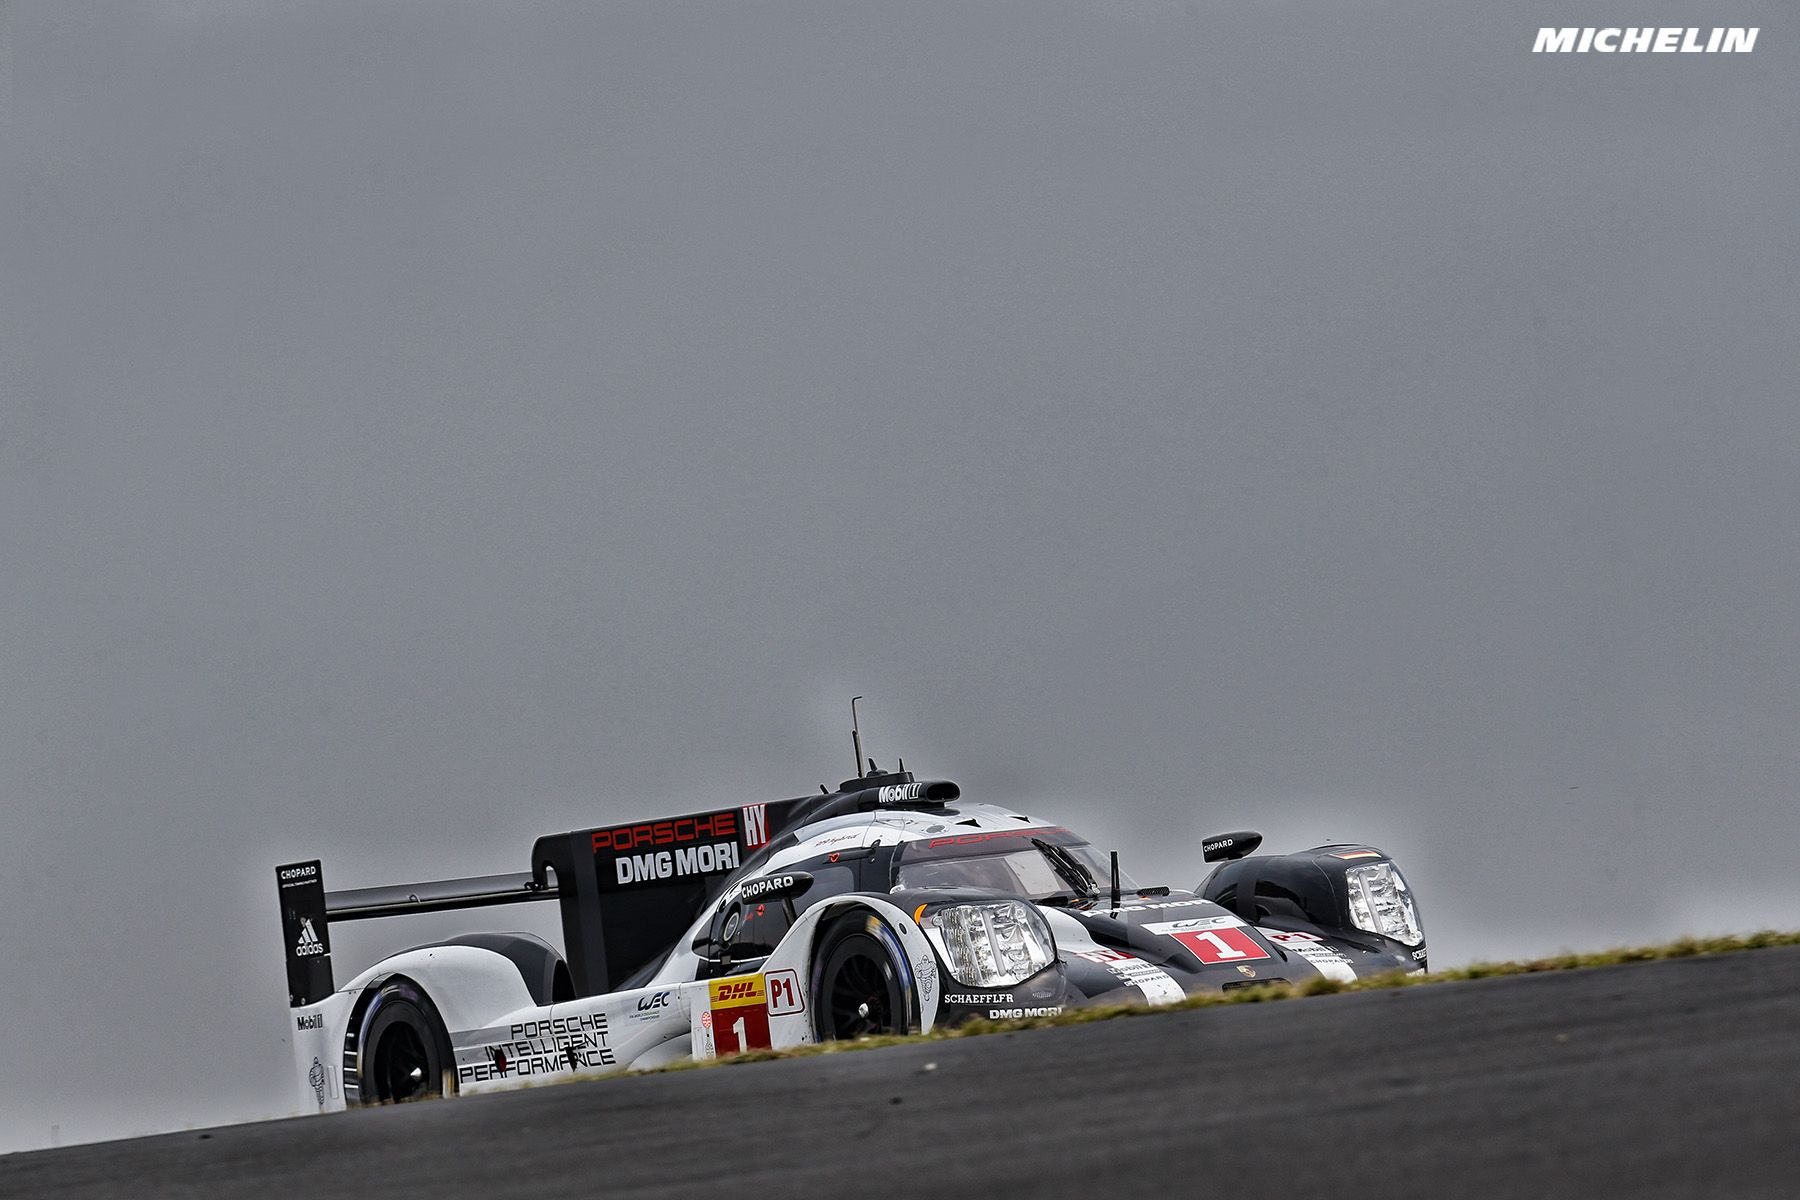 6 Hours of Nürburgring (WEC): victory for the N°1 Porsche/Michelin